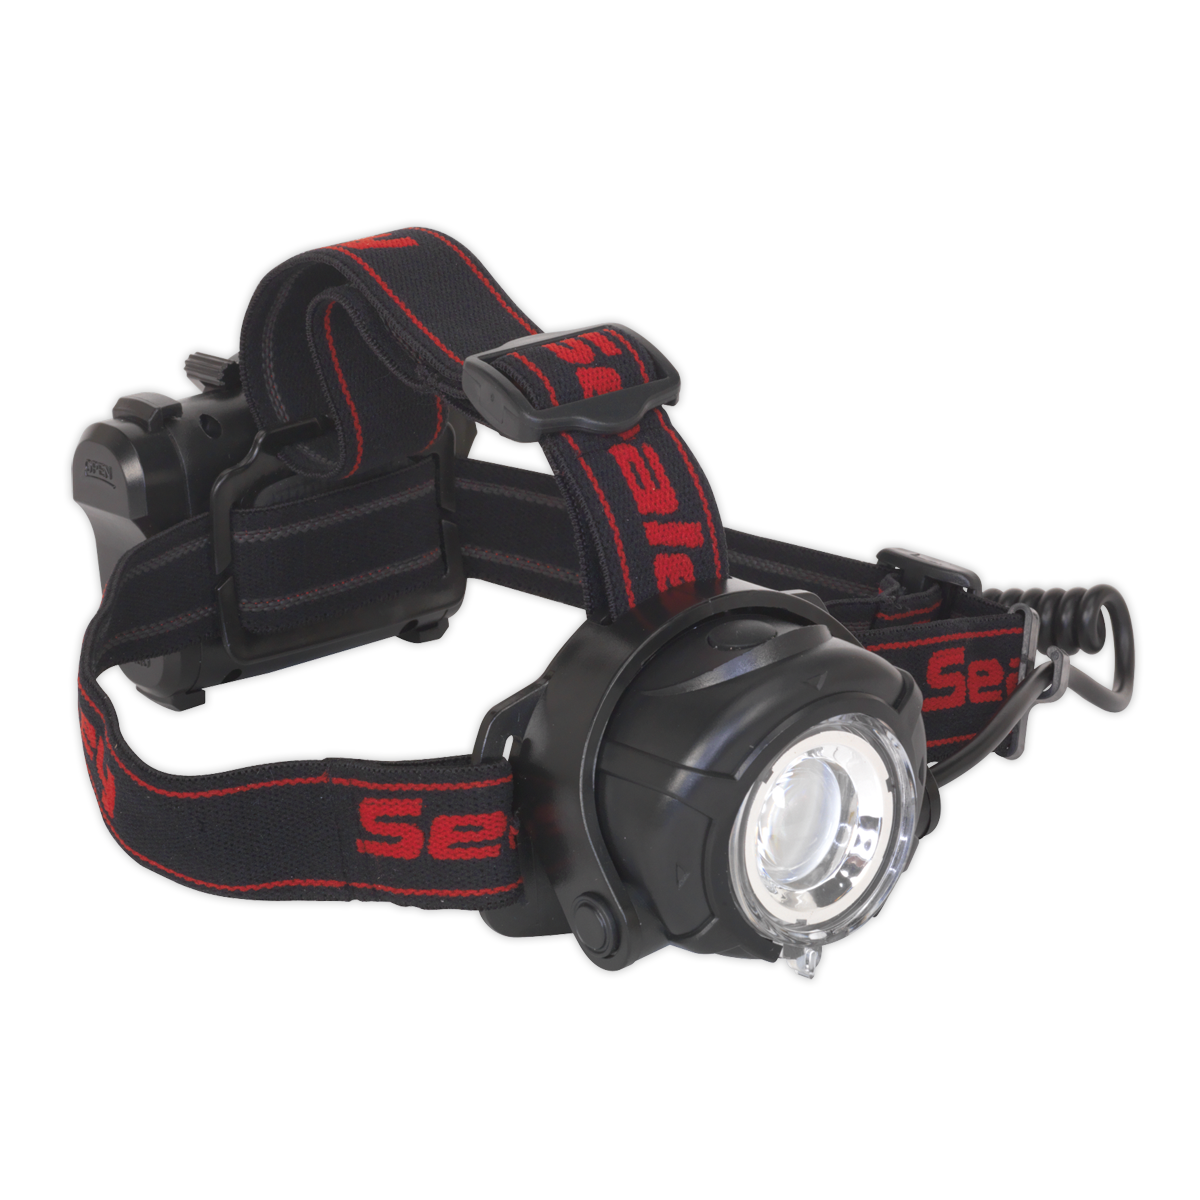 Head Torch 5W CREE XPG LED with Adjustable Focus & Brightness 3 x AA Cell